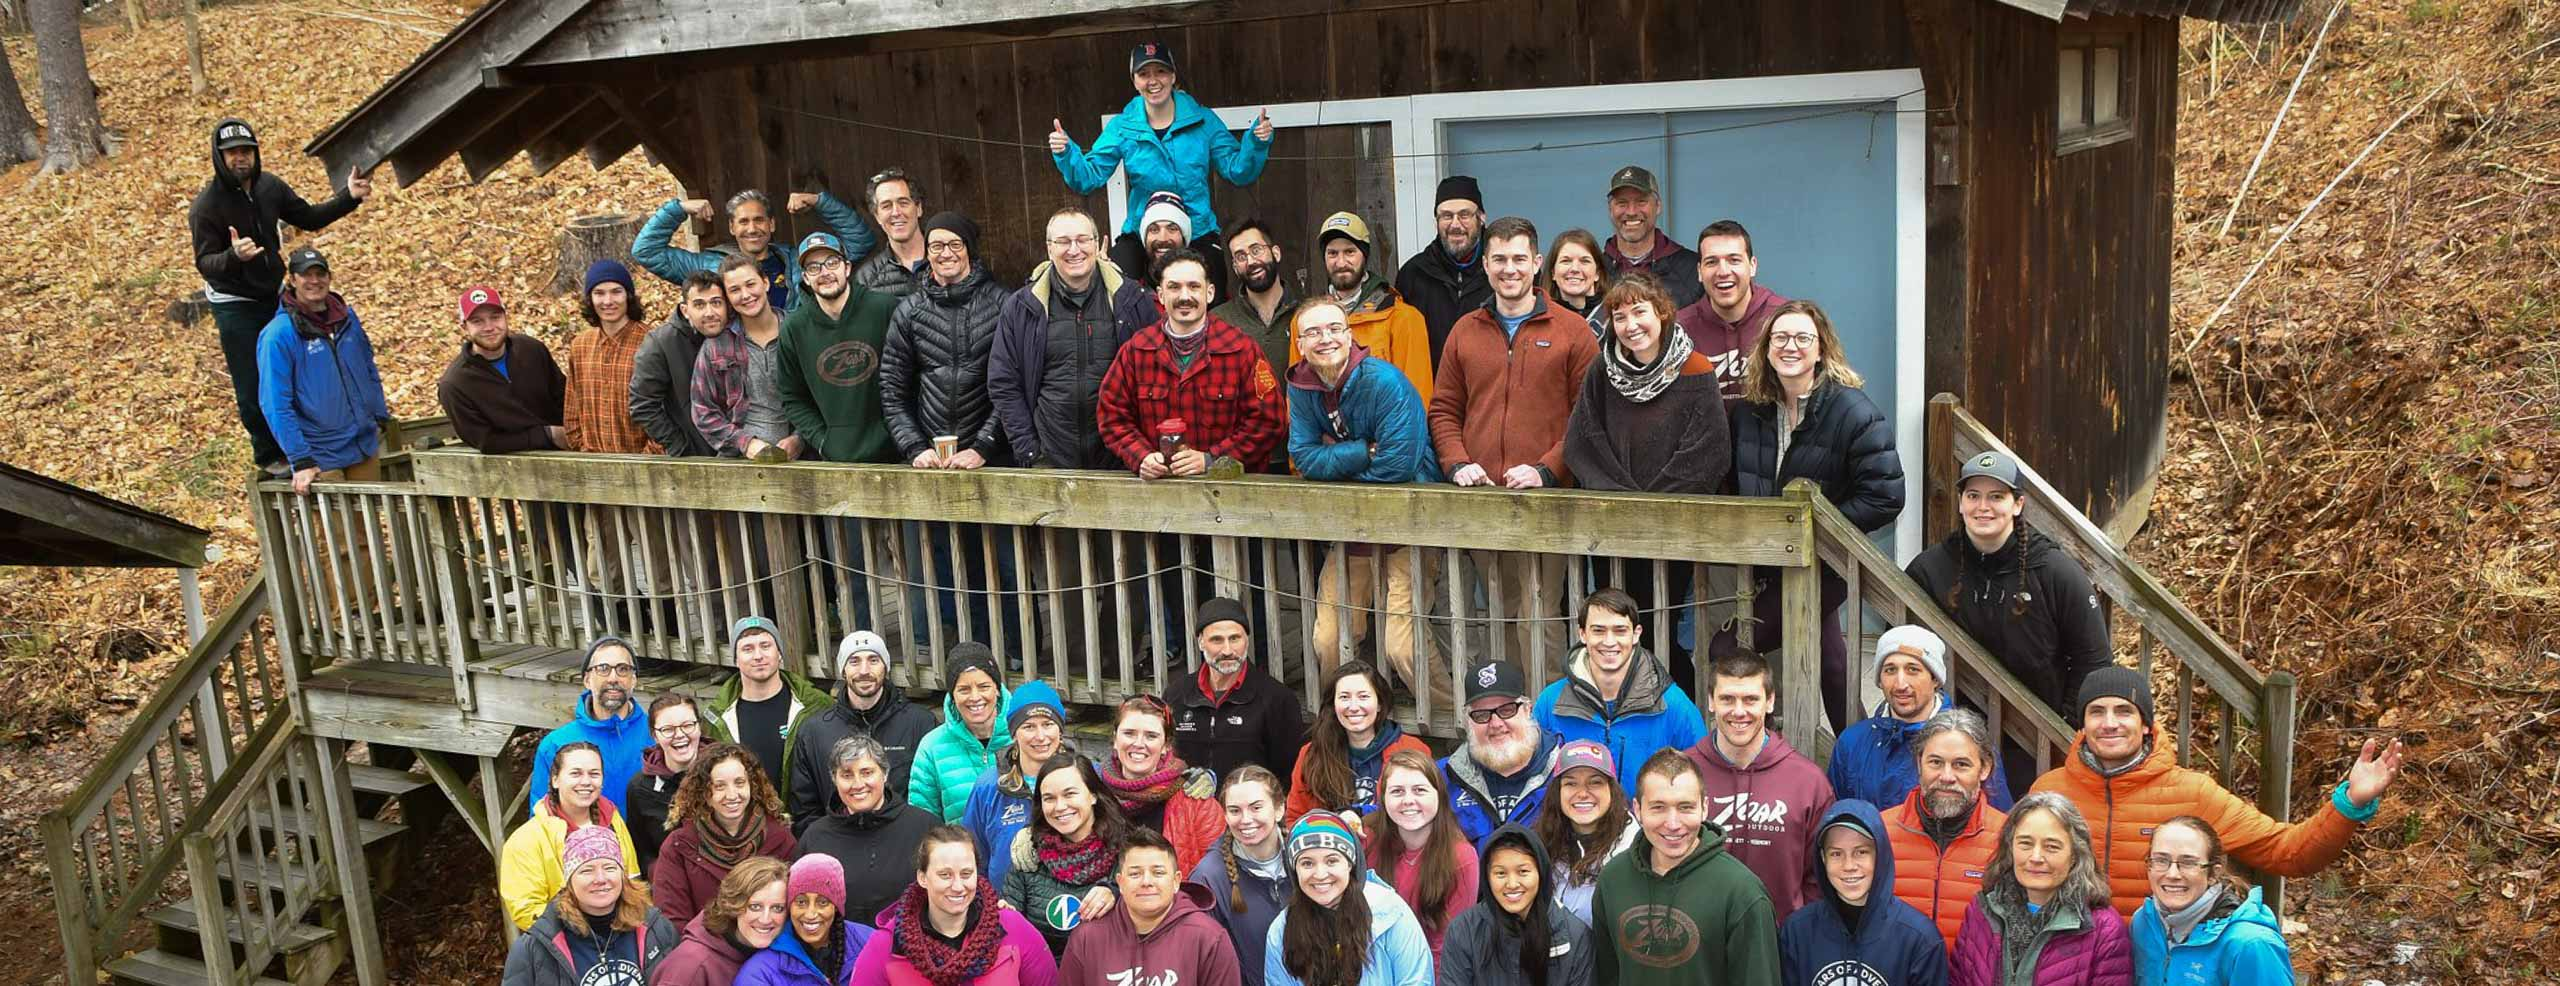 All of Zoar staff gathered outside on a deck for a group photo on a fall day